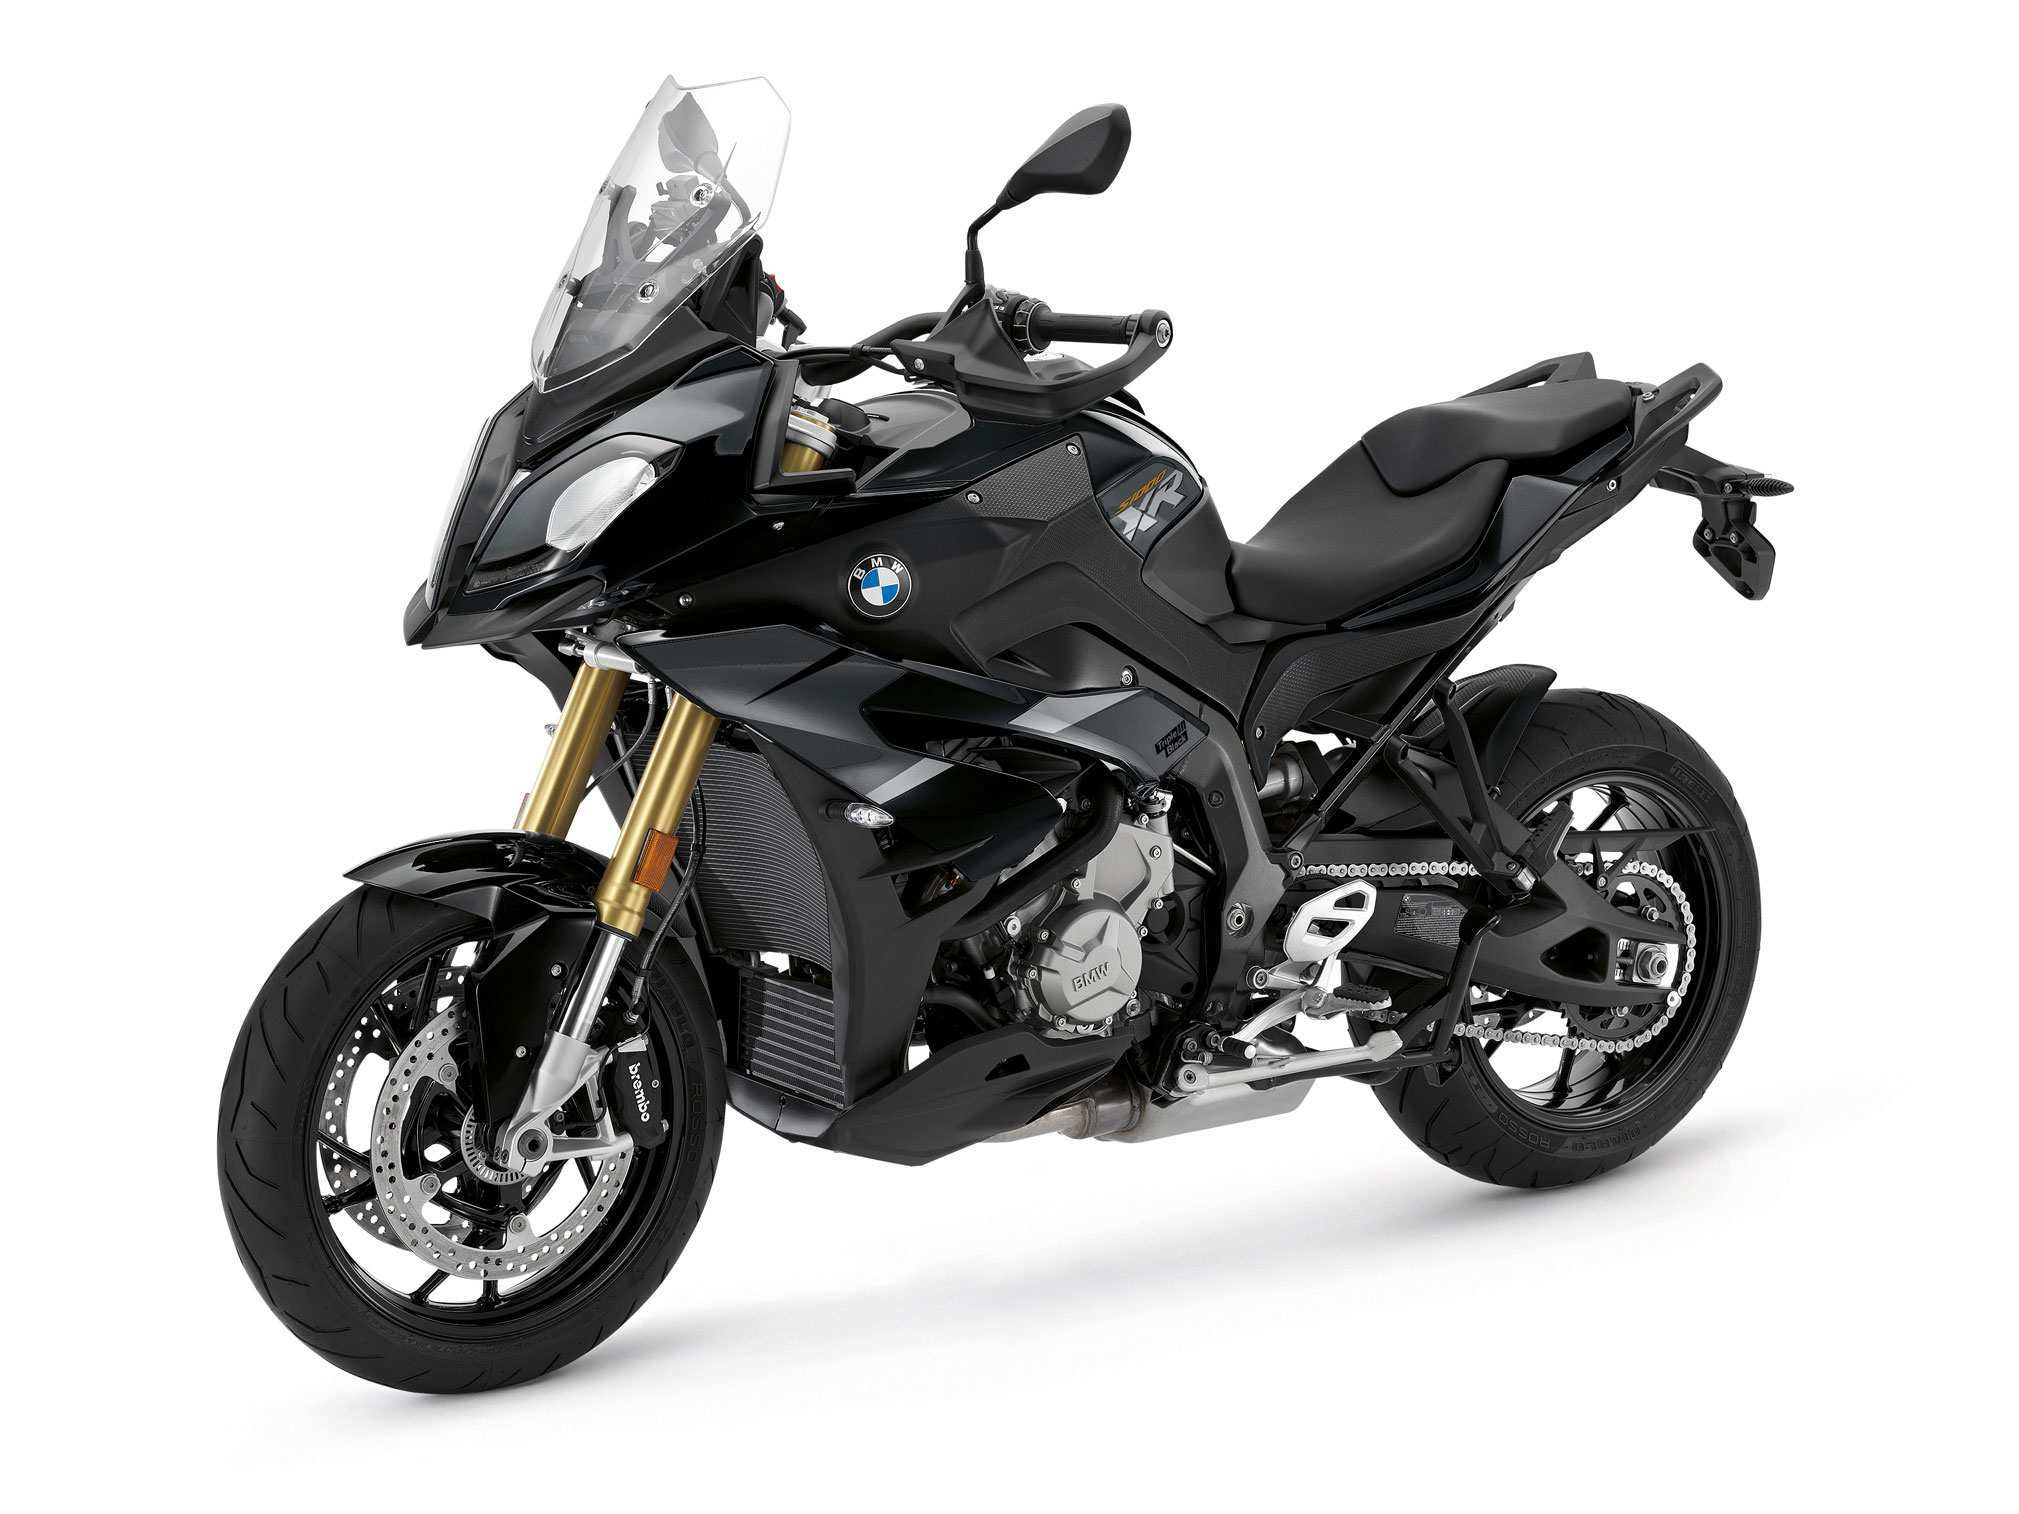 89 Best Review Best Bmw S1000Xr 2019 Release Date Price And Review Photos for Best Bmw S1000Xr 2019 Release Date Price And Review